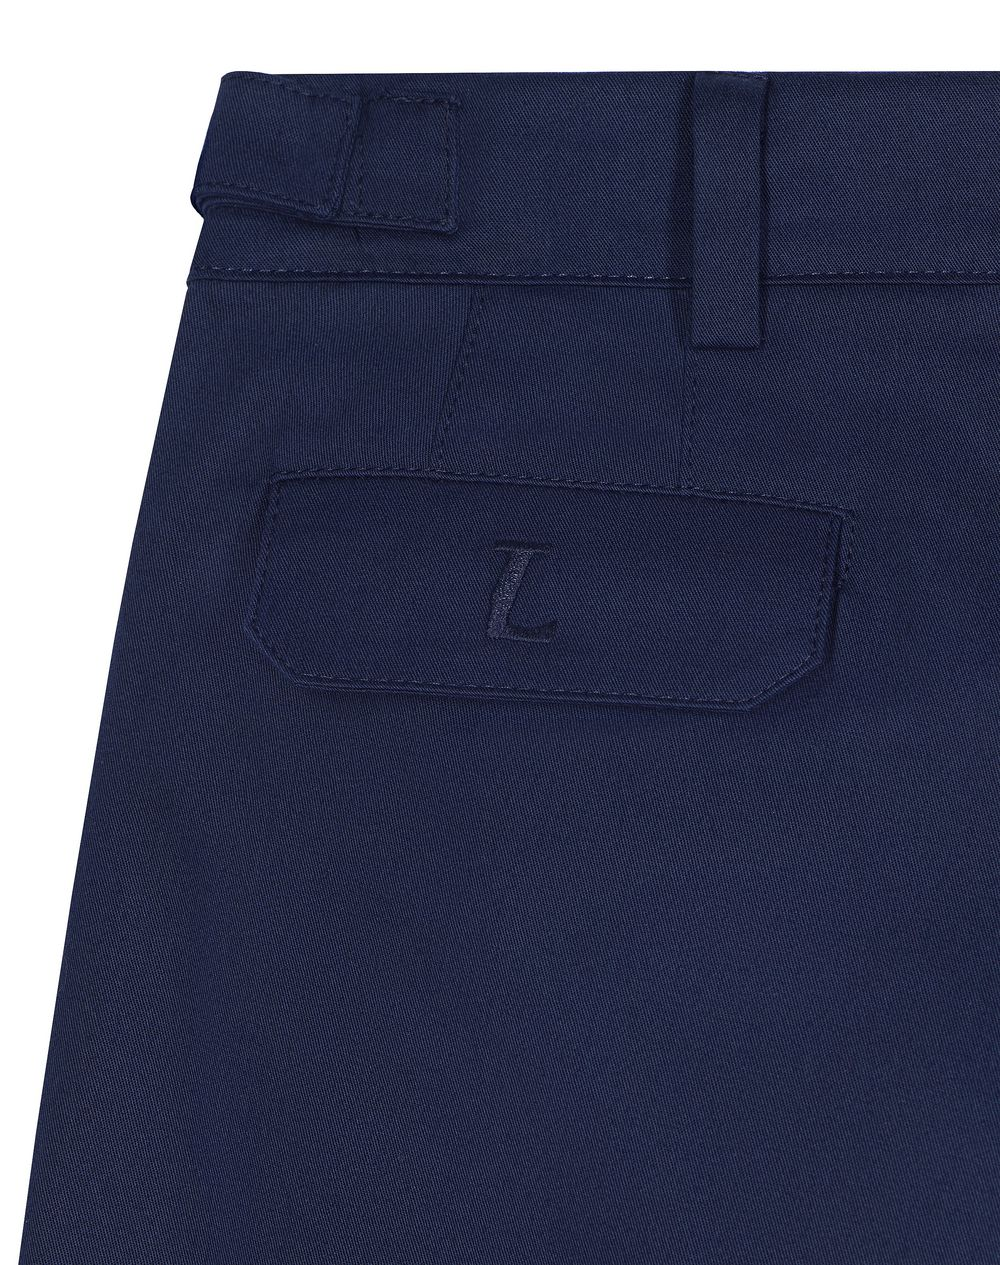 NAVY BLUE CHINO SHORTS     - Lanvin